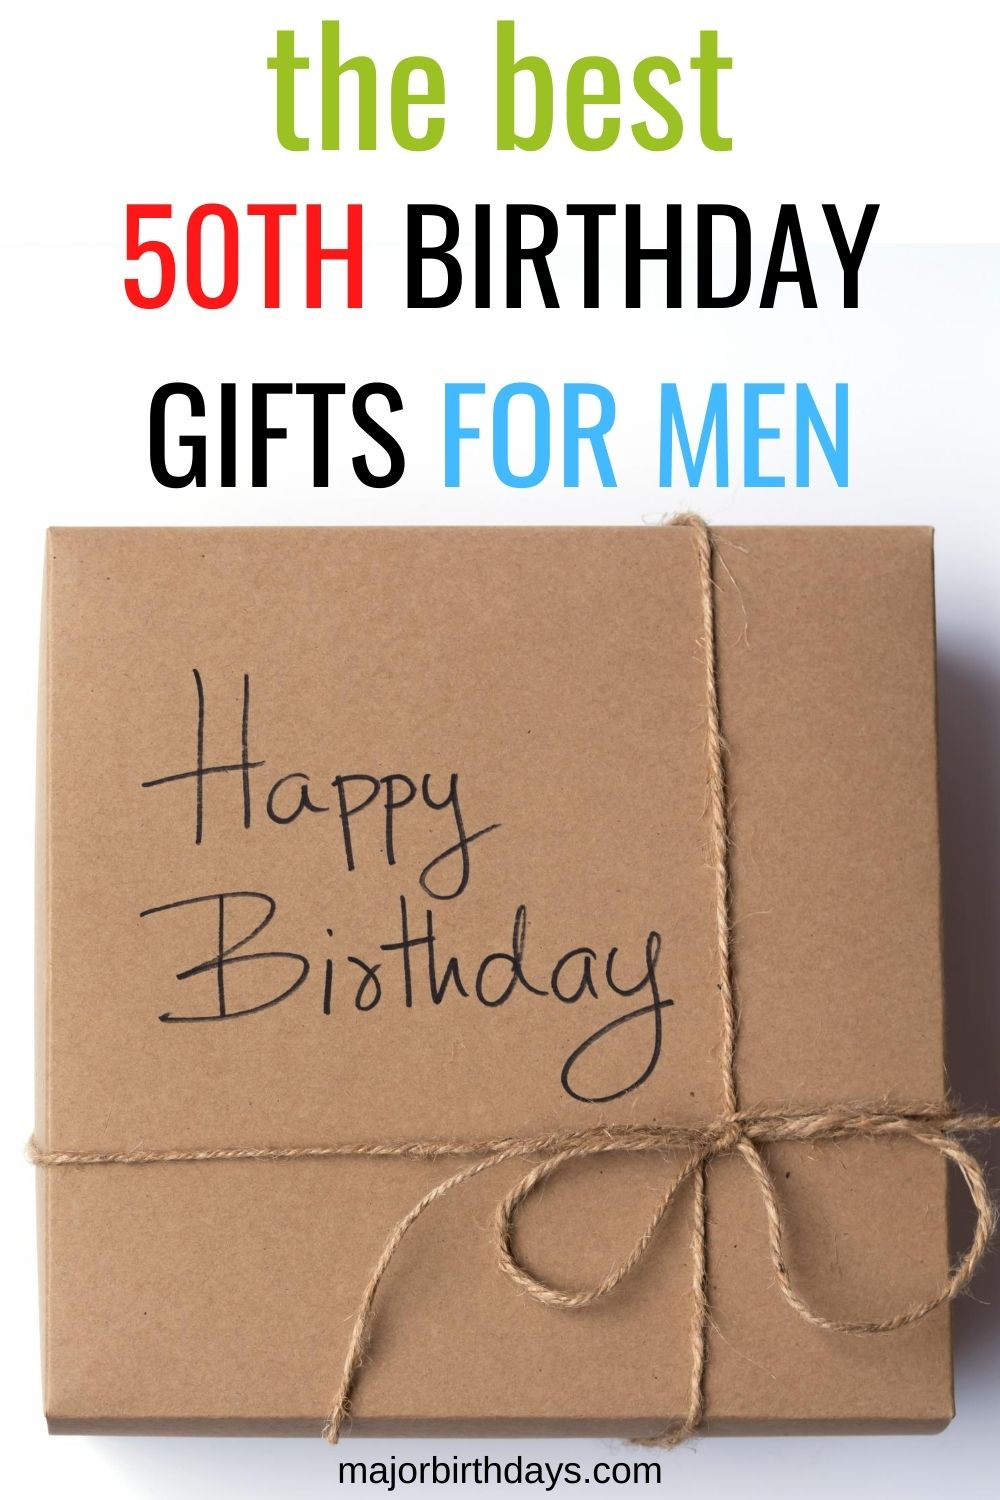 The best 50th birthday gifts for men